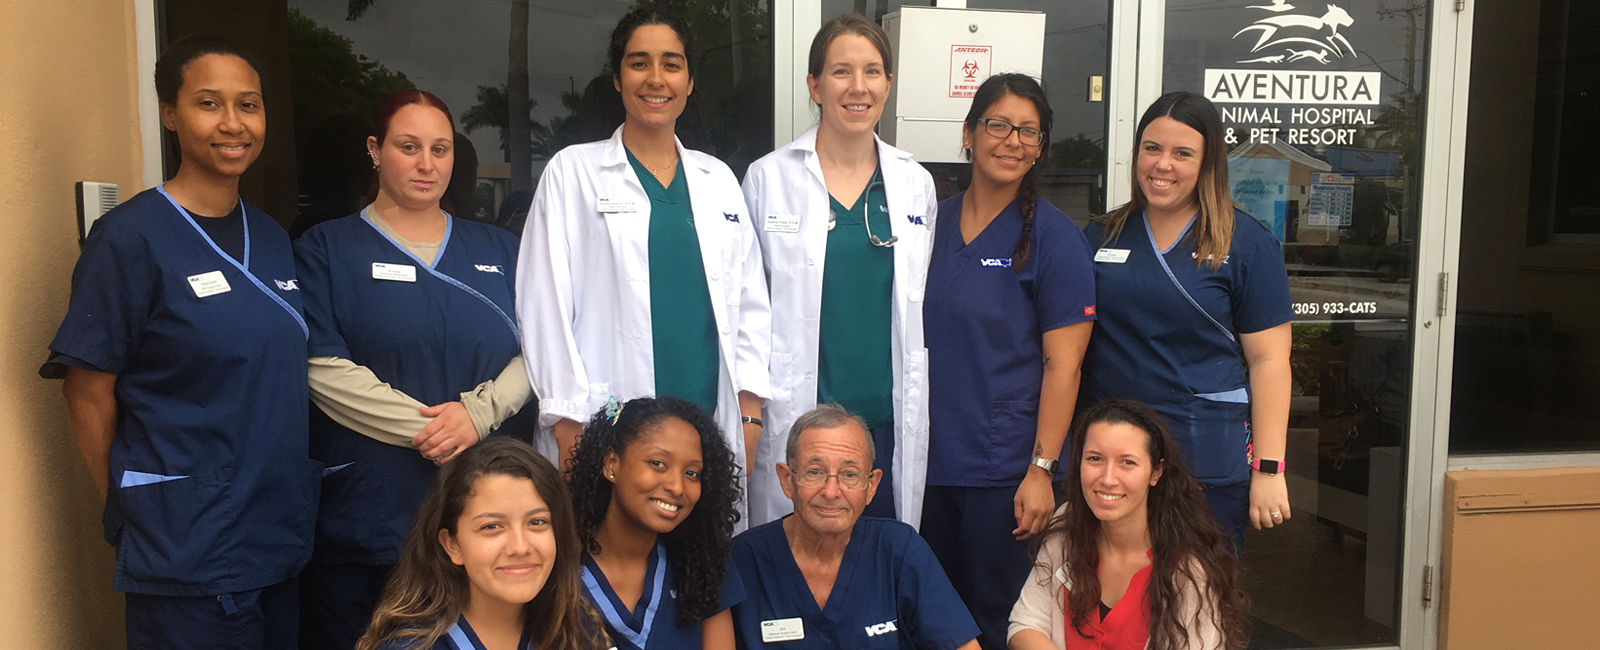 Team Picture of VCA Aventura Animal Hospital